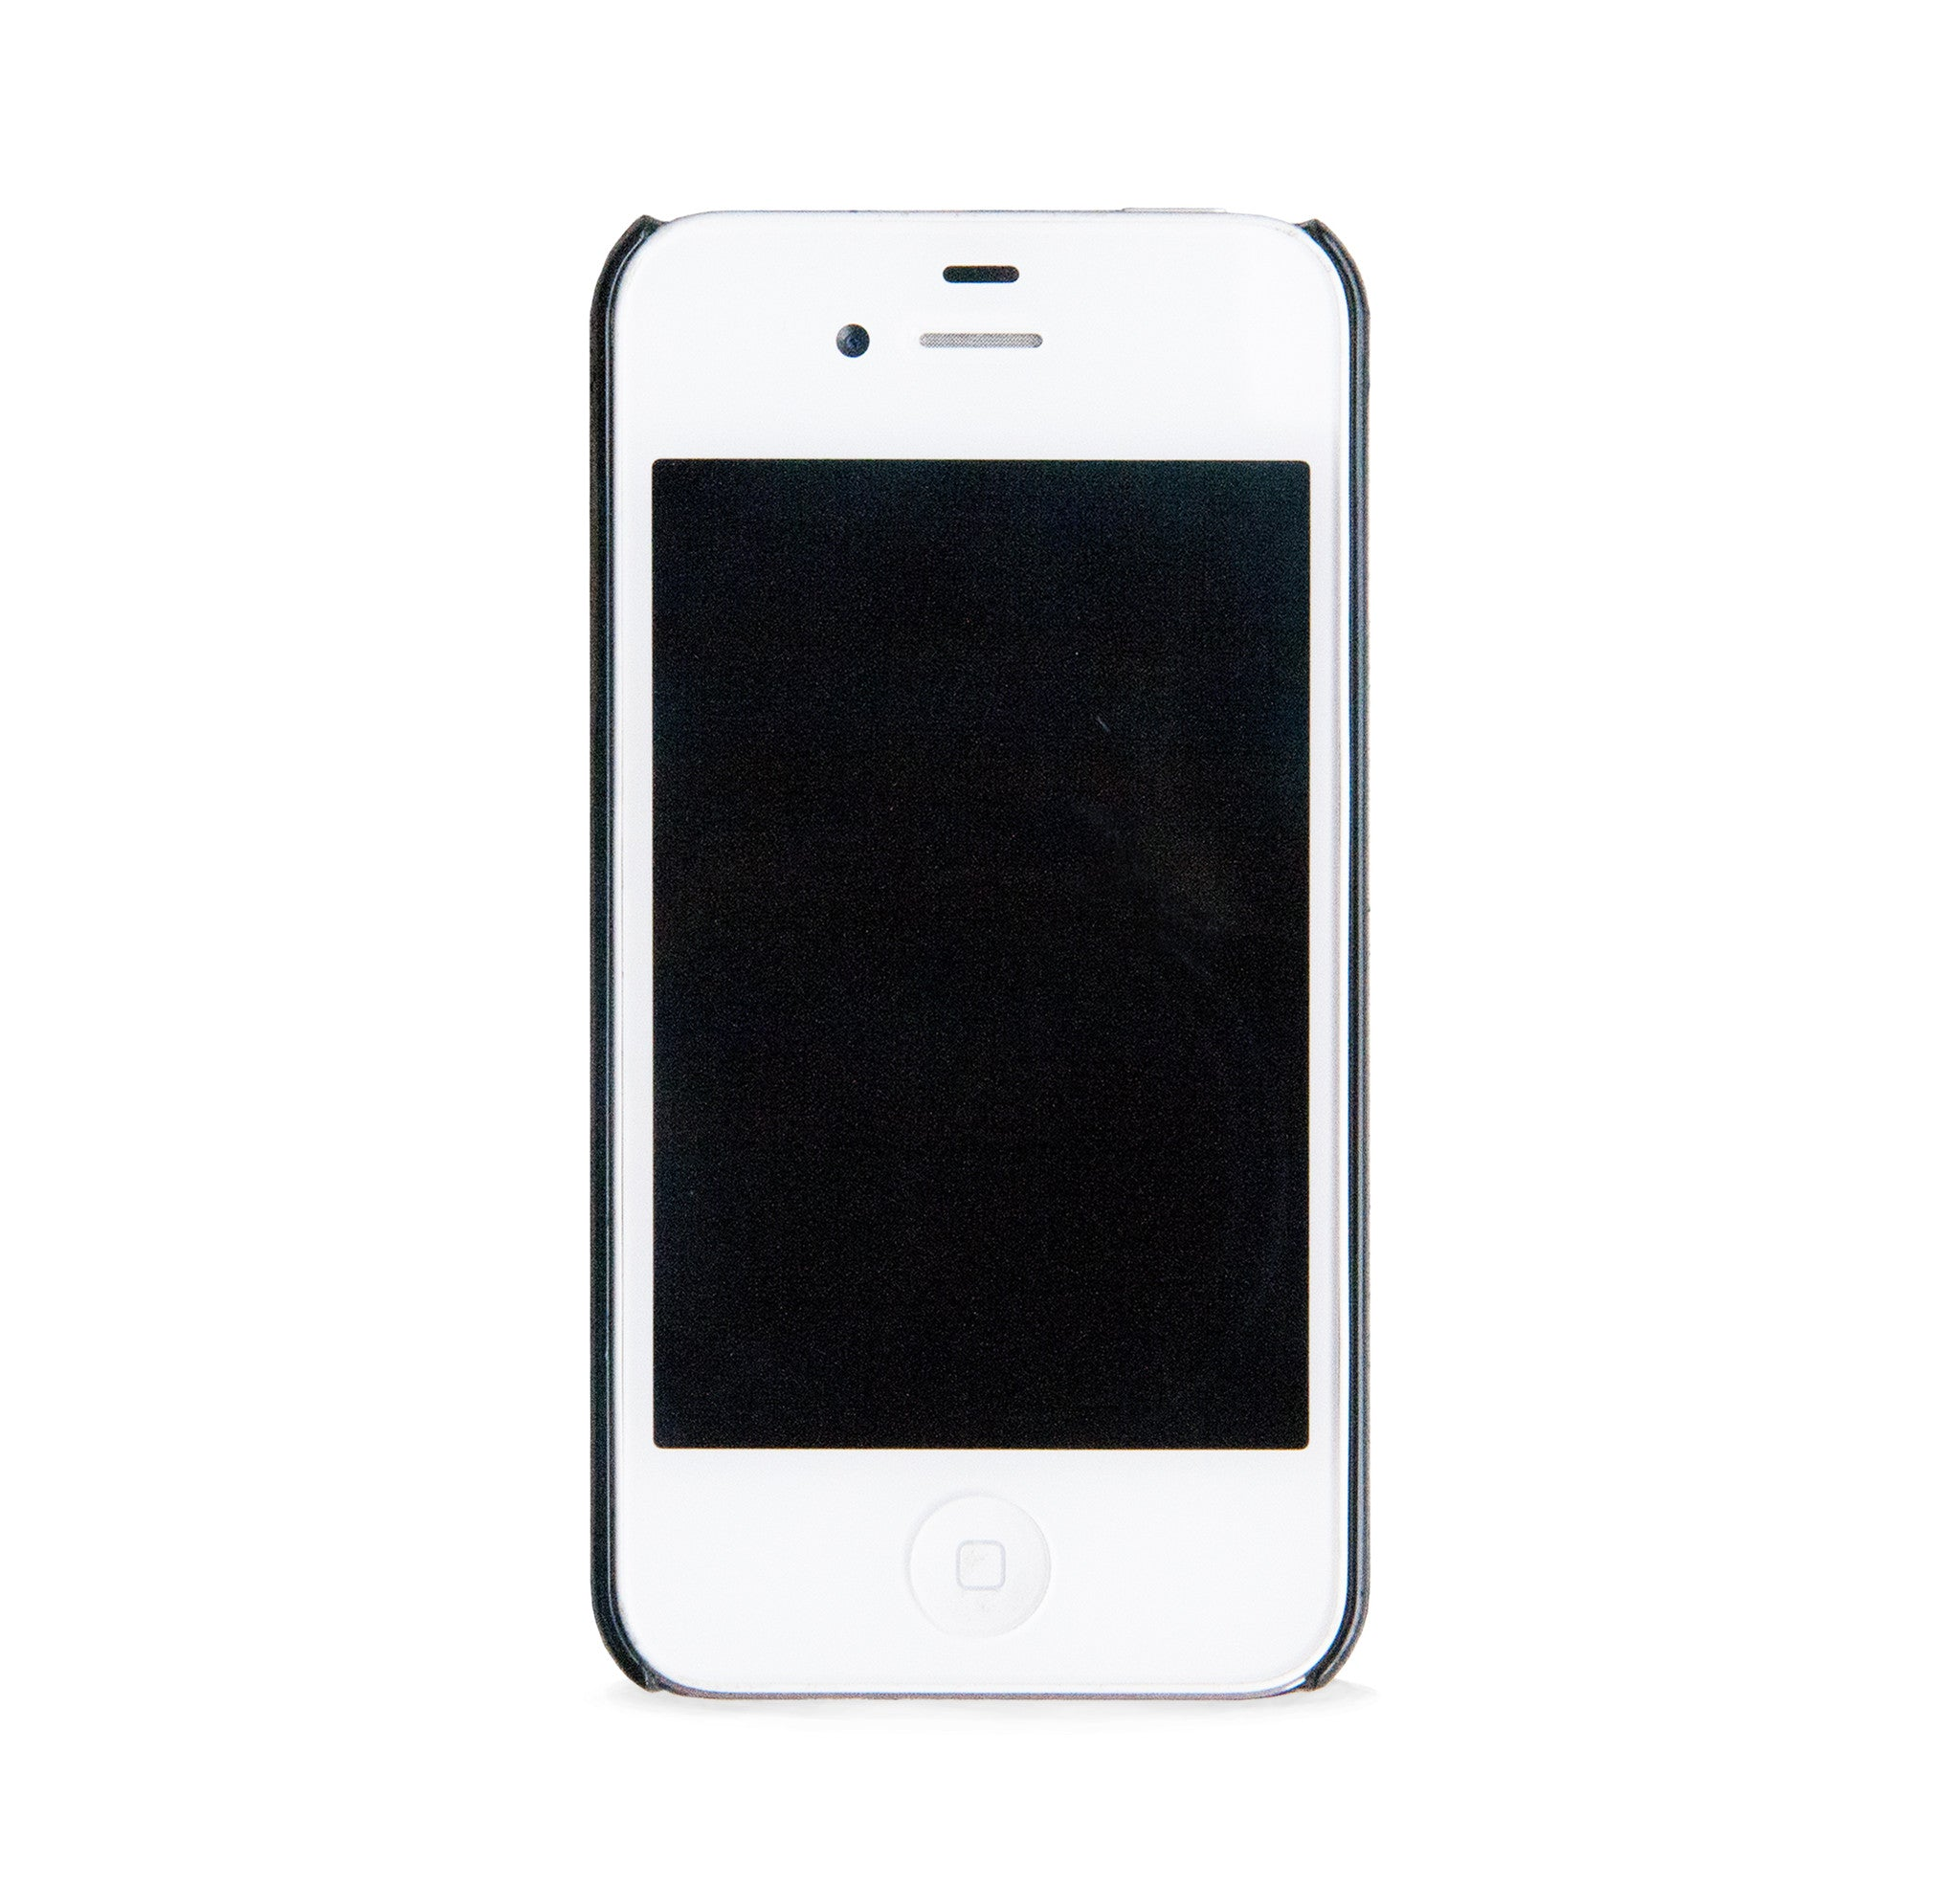 AZTEC GEO WHITE WOOD FOR IPHONE 4/4S